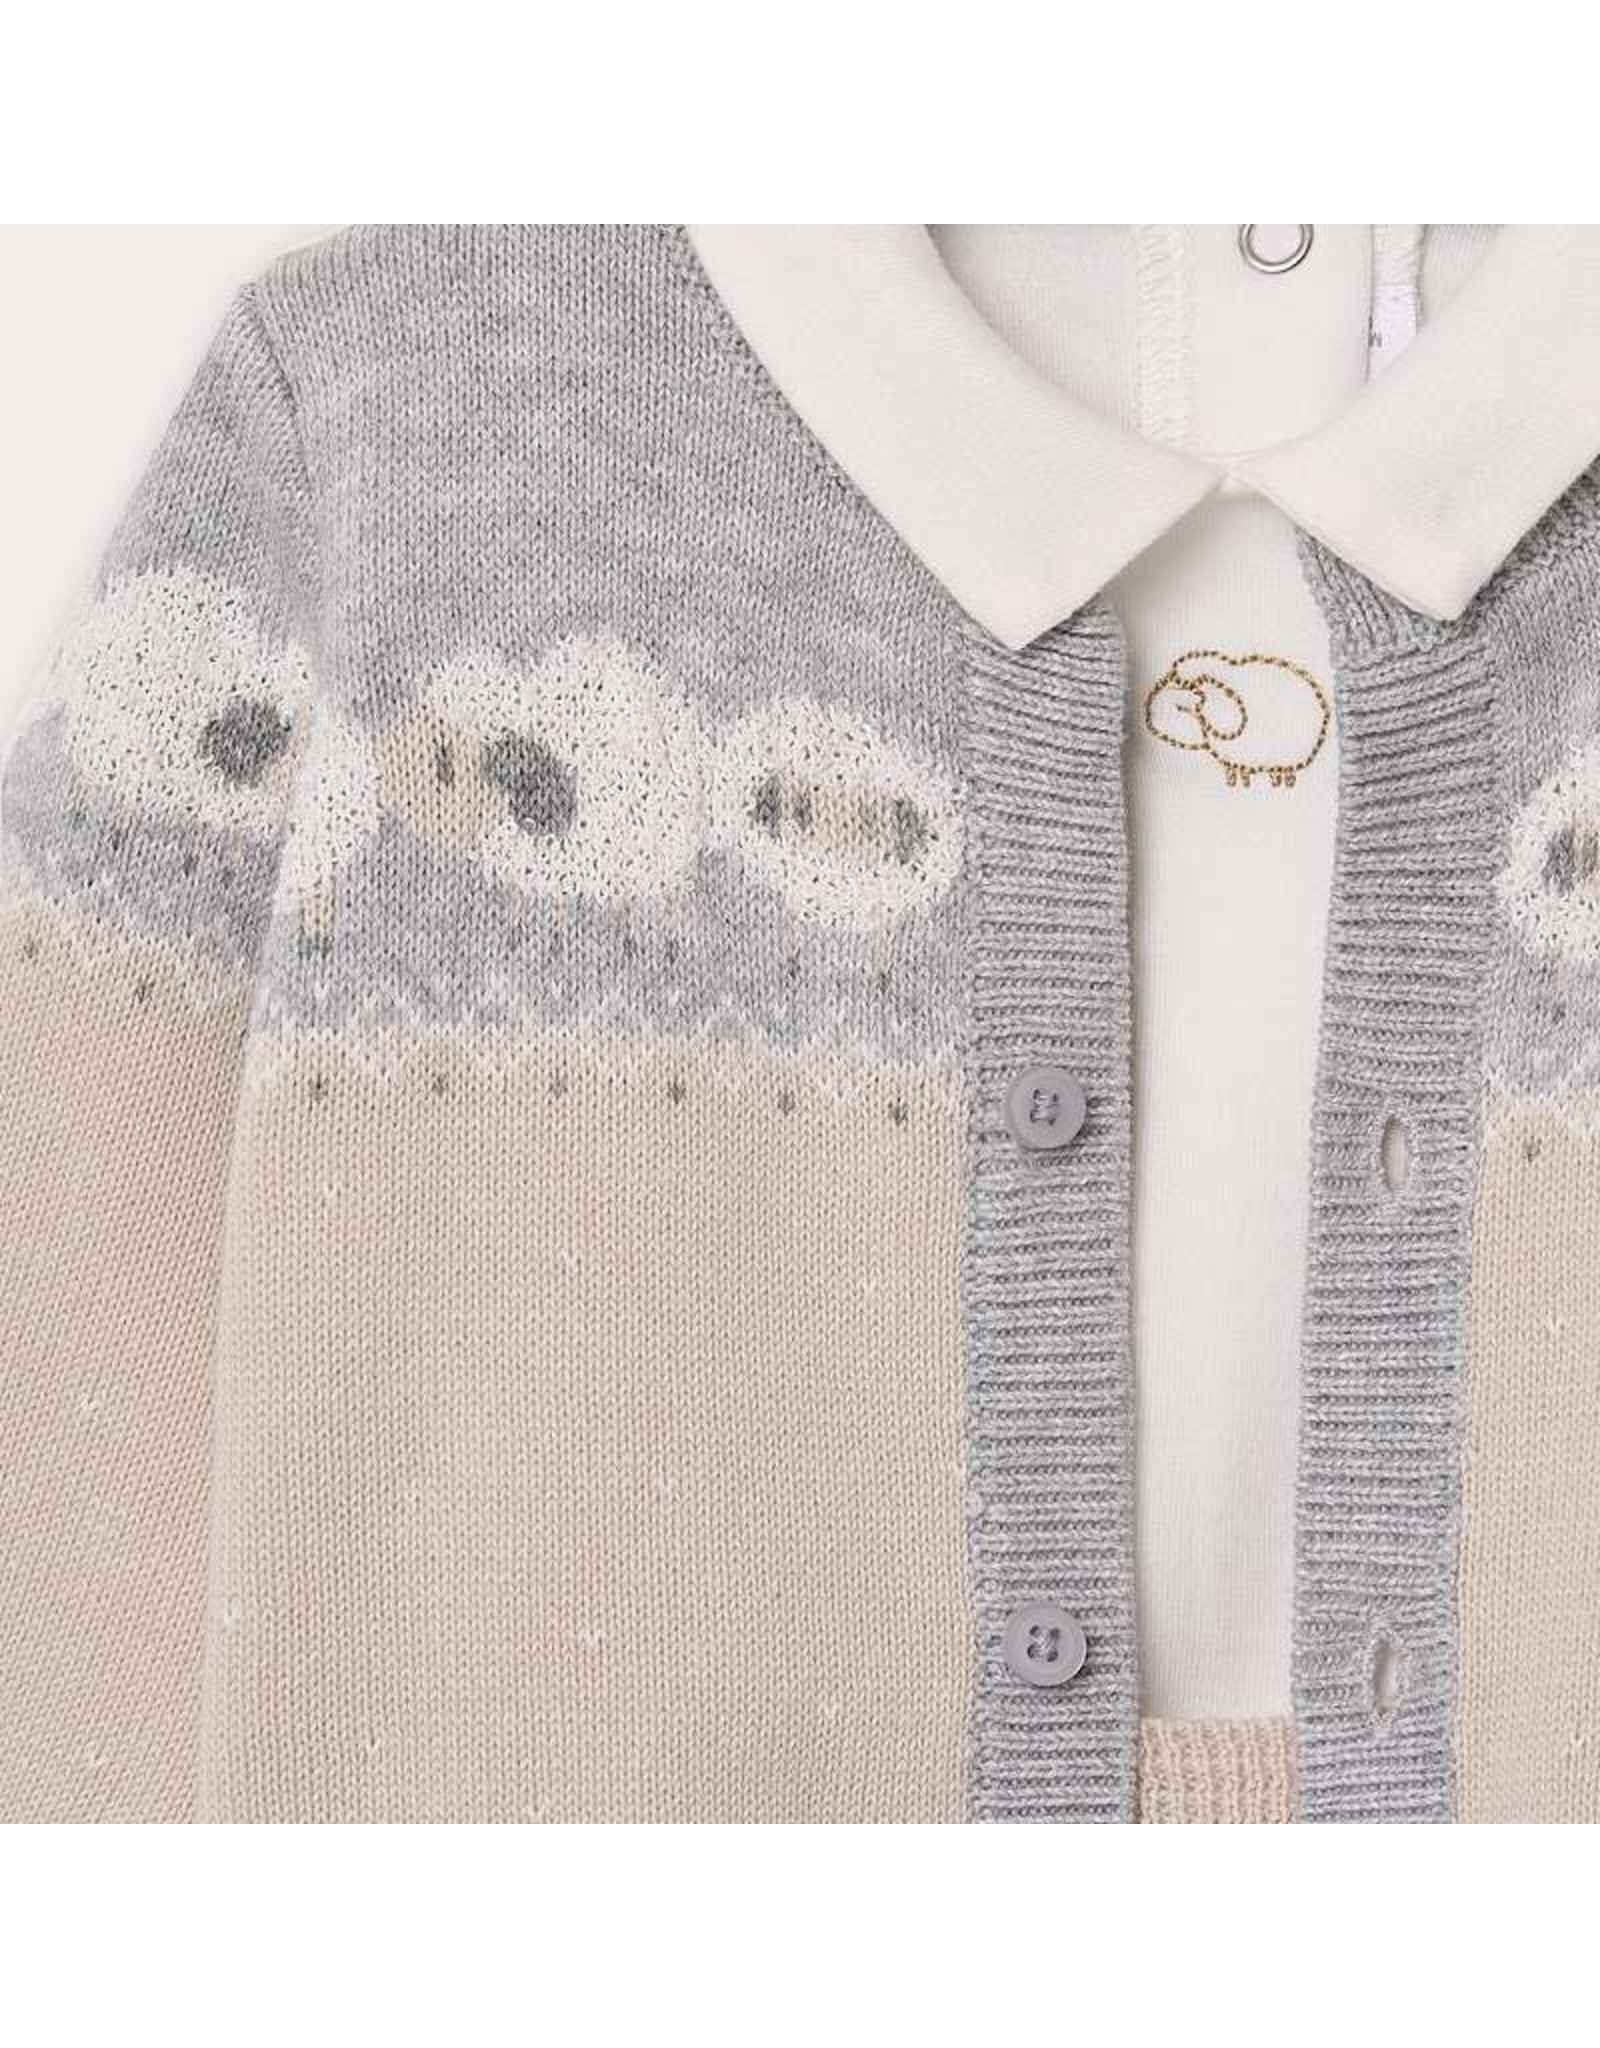 Mayoral Knit Cardigan/Onesie/Overall Set